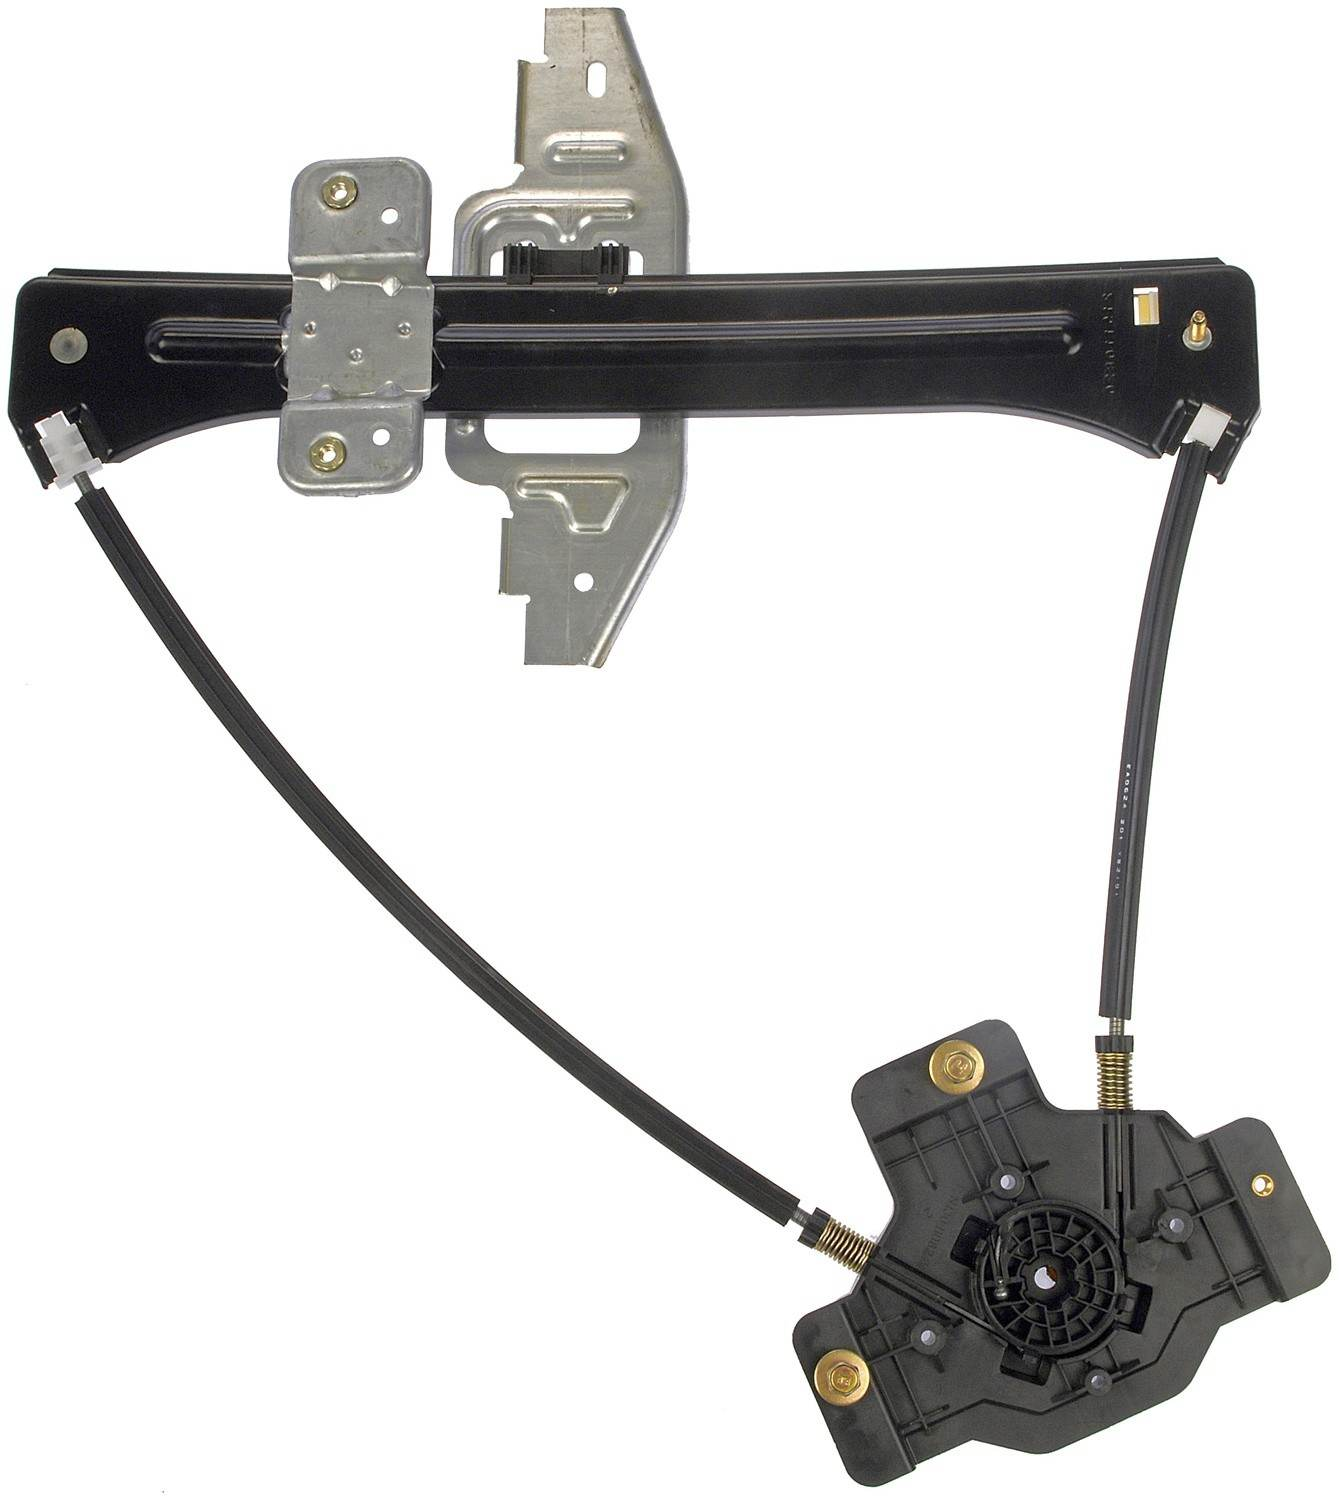 2005 Ford Explorer Sport Trac Interior: Window Regulator Fits 2001-2005 Ford Explorer Sport Trac